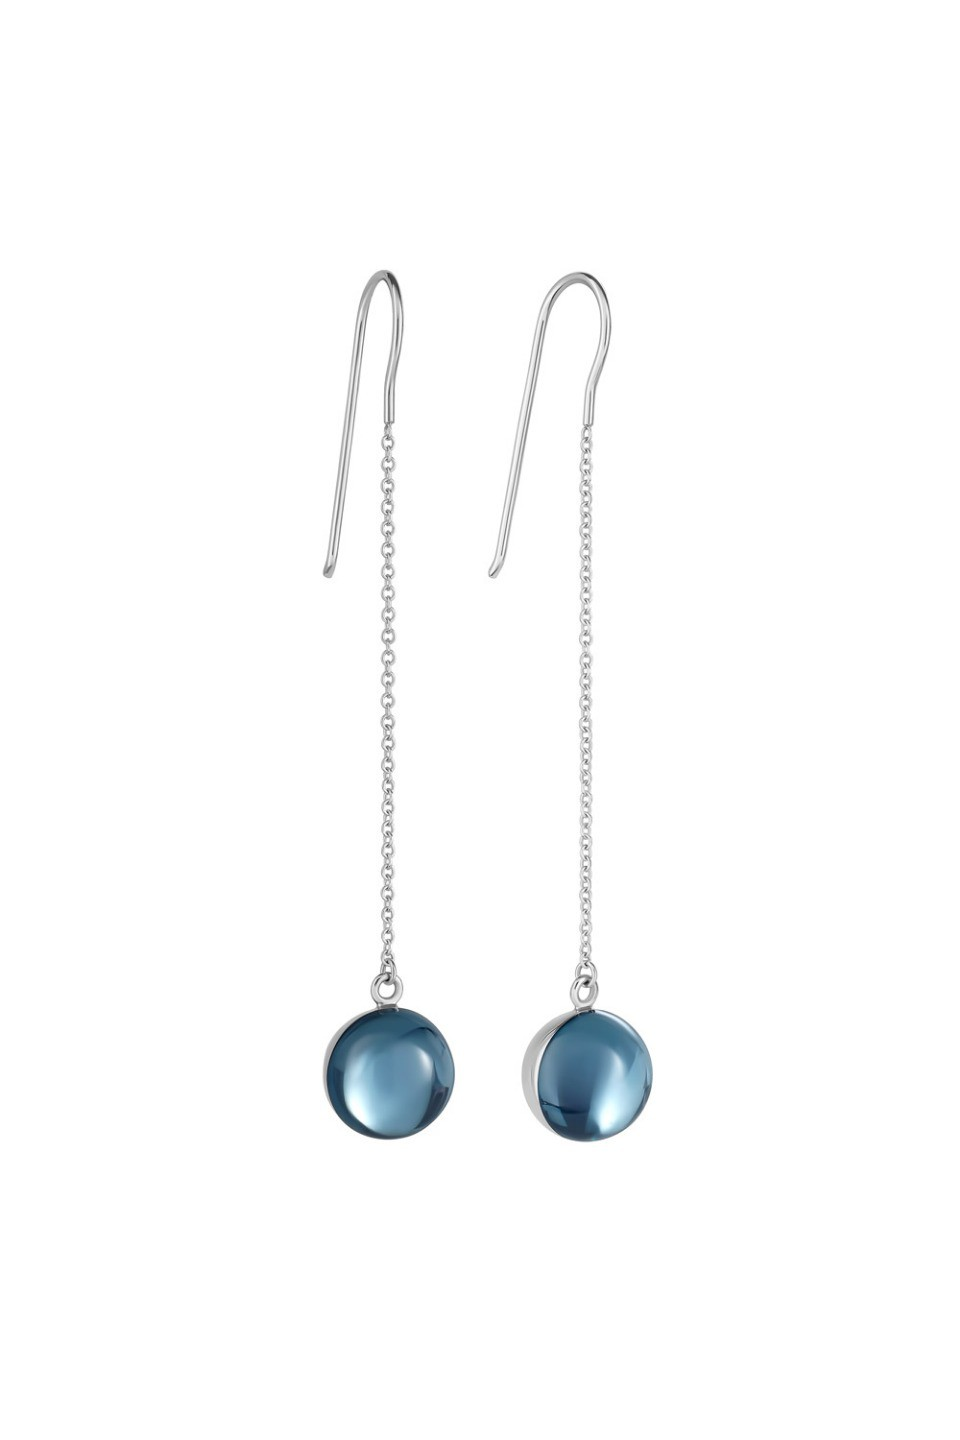 Large Light Blue Lollipop Earrings